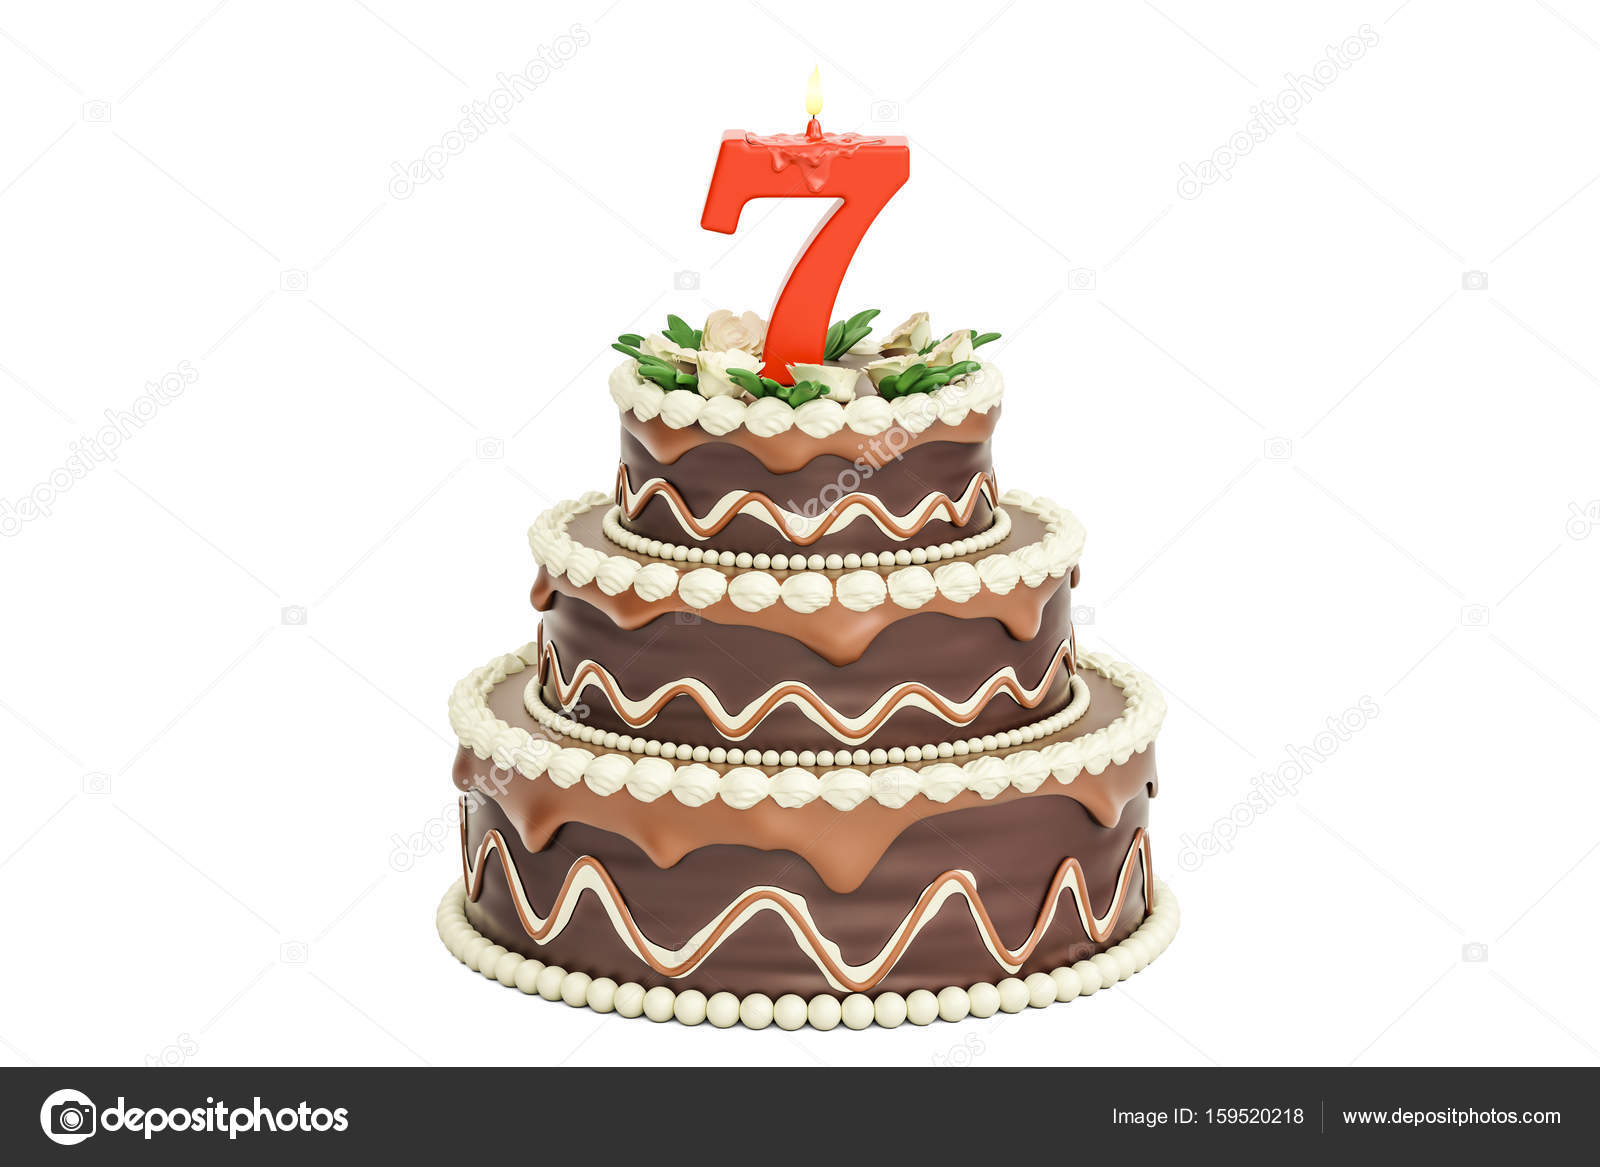 Chocolate Birthday Cake With Candle Number 7 3D Rendering Isolated On White Background Photo By